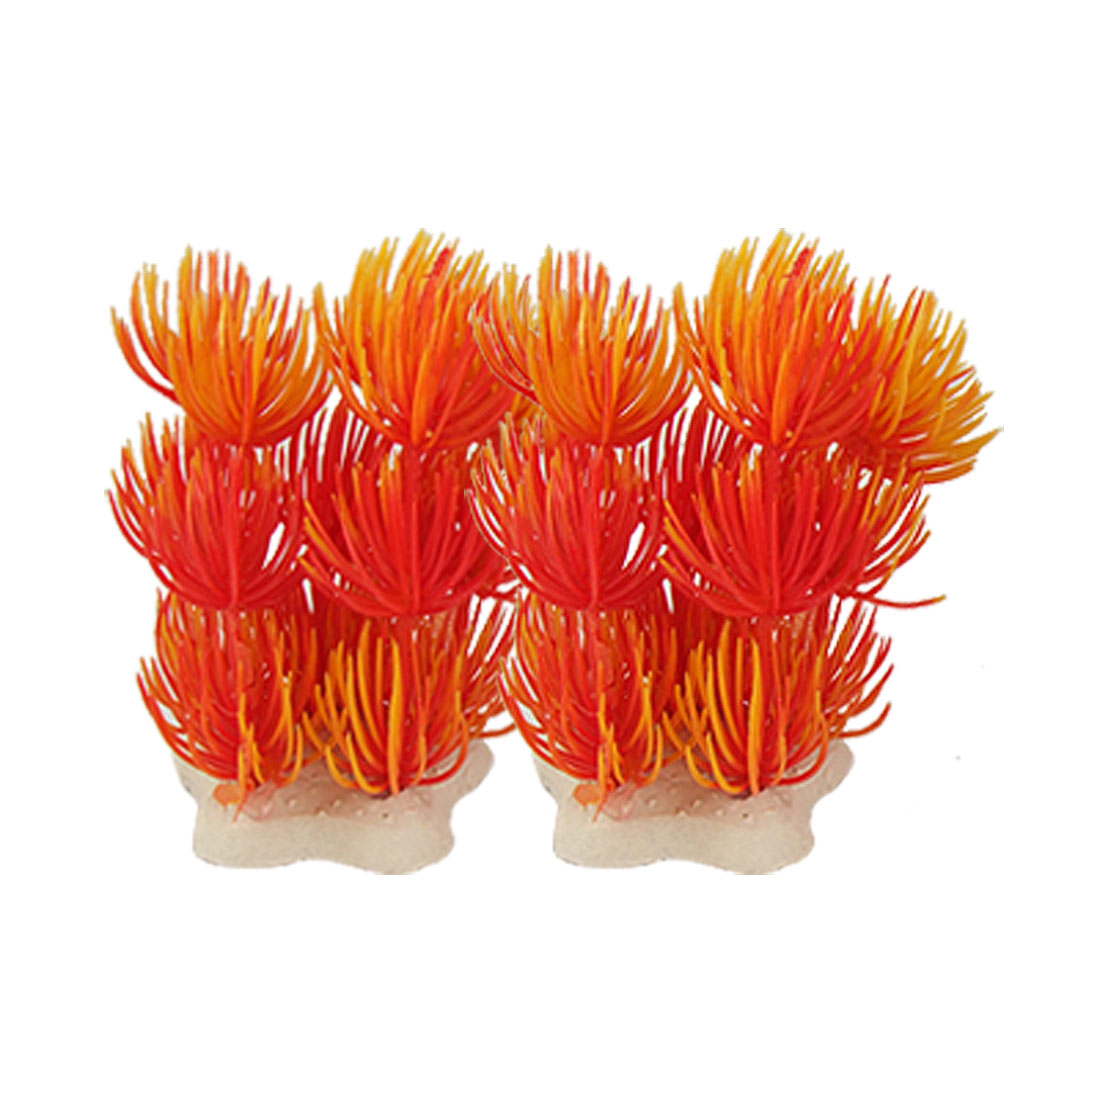 Seastar Shaped Base Orange Red Plastic Grass 2 Pcs for Fish Tank